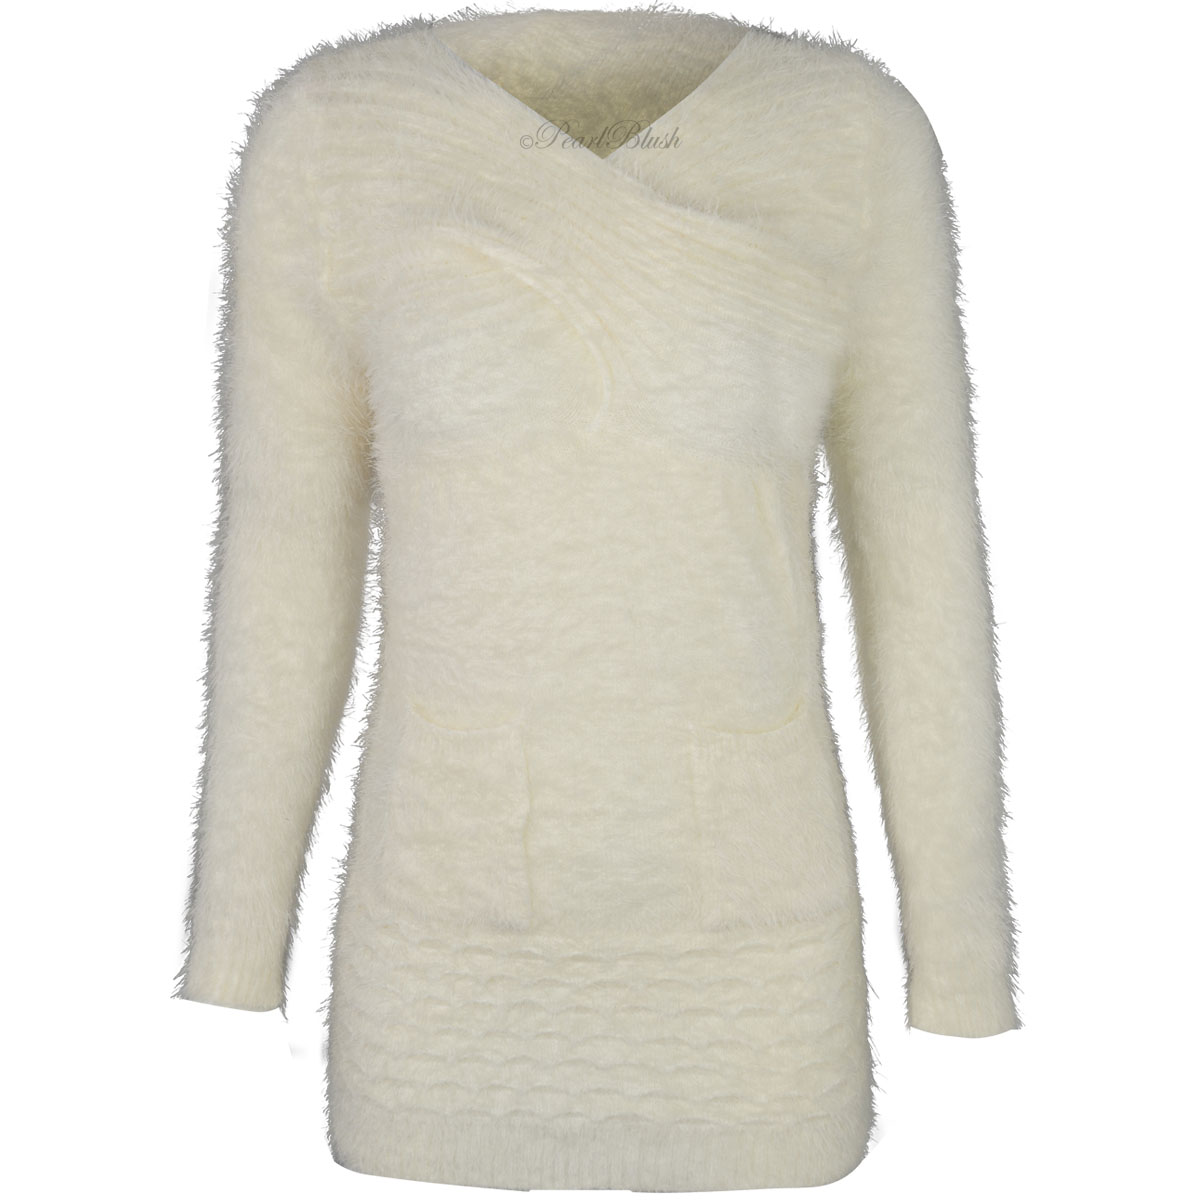 Knitwear, Jumpers & Cardigans The weather can't seem to make its mind up during the transitional months, which is why practical lightweight layering is a must. After all, when it comes to wrapping up, who can resist sumptuously soft and snug knitwear?